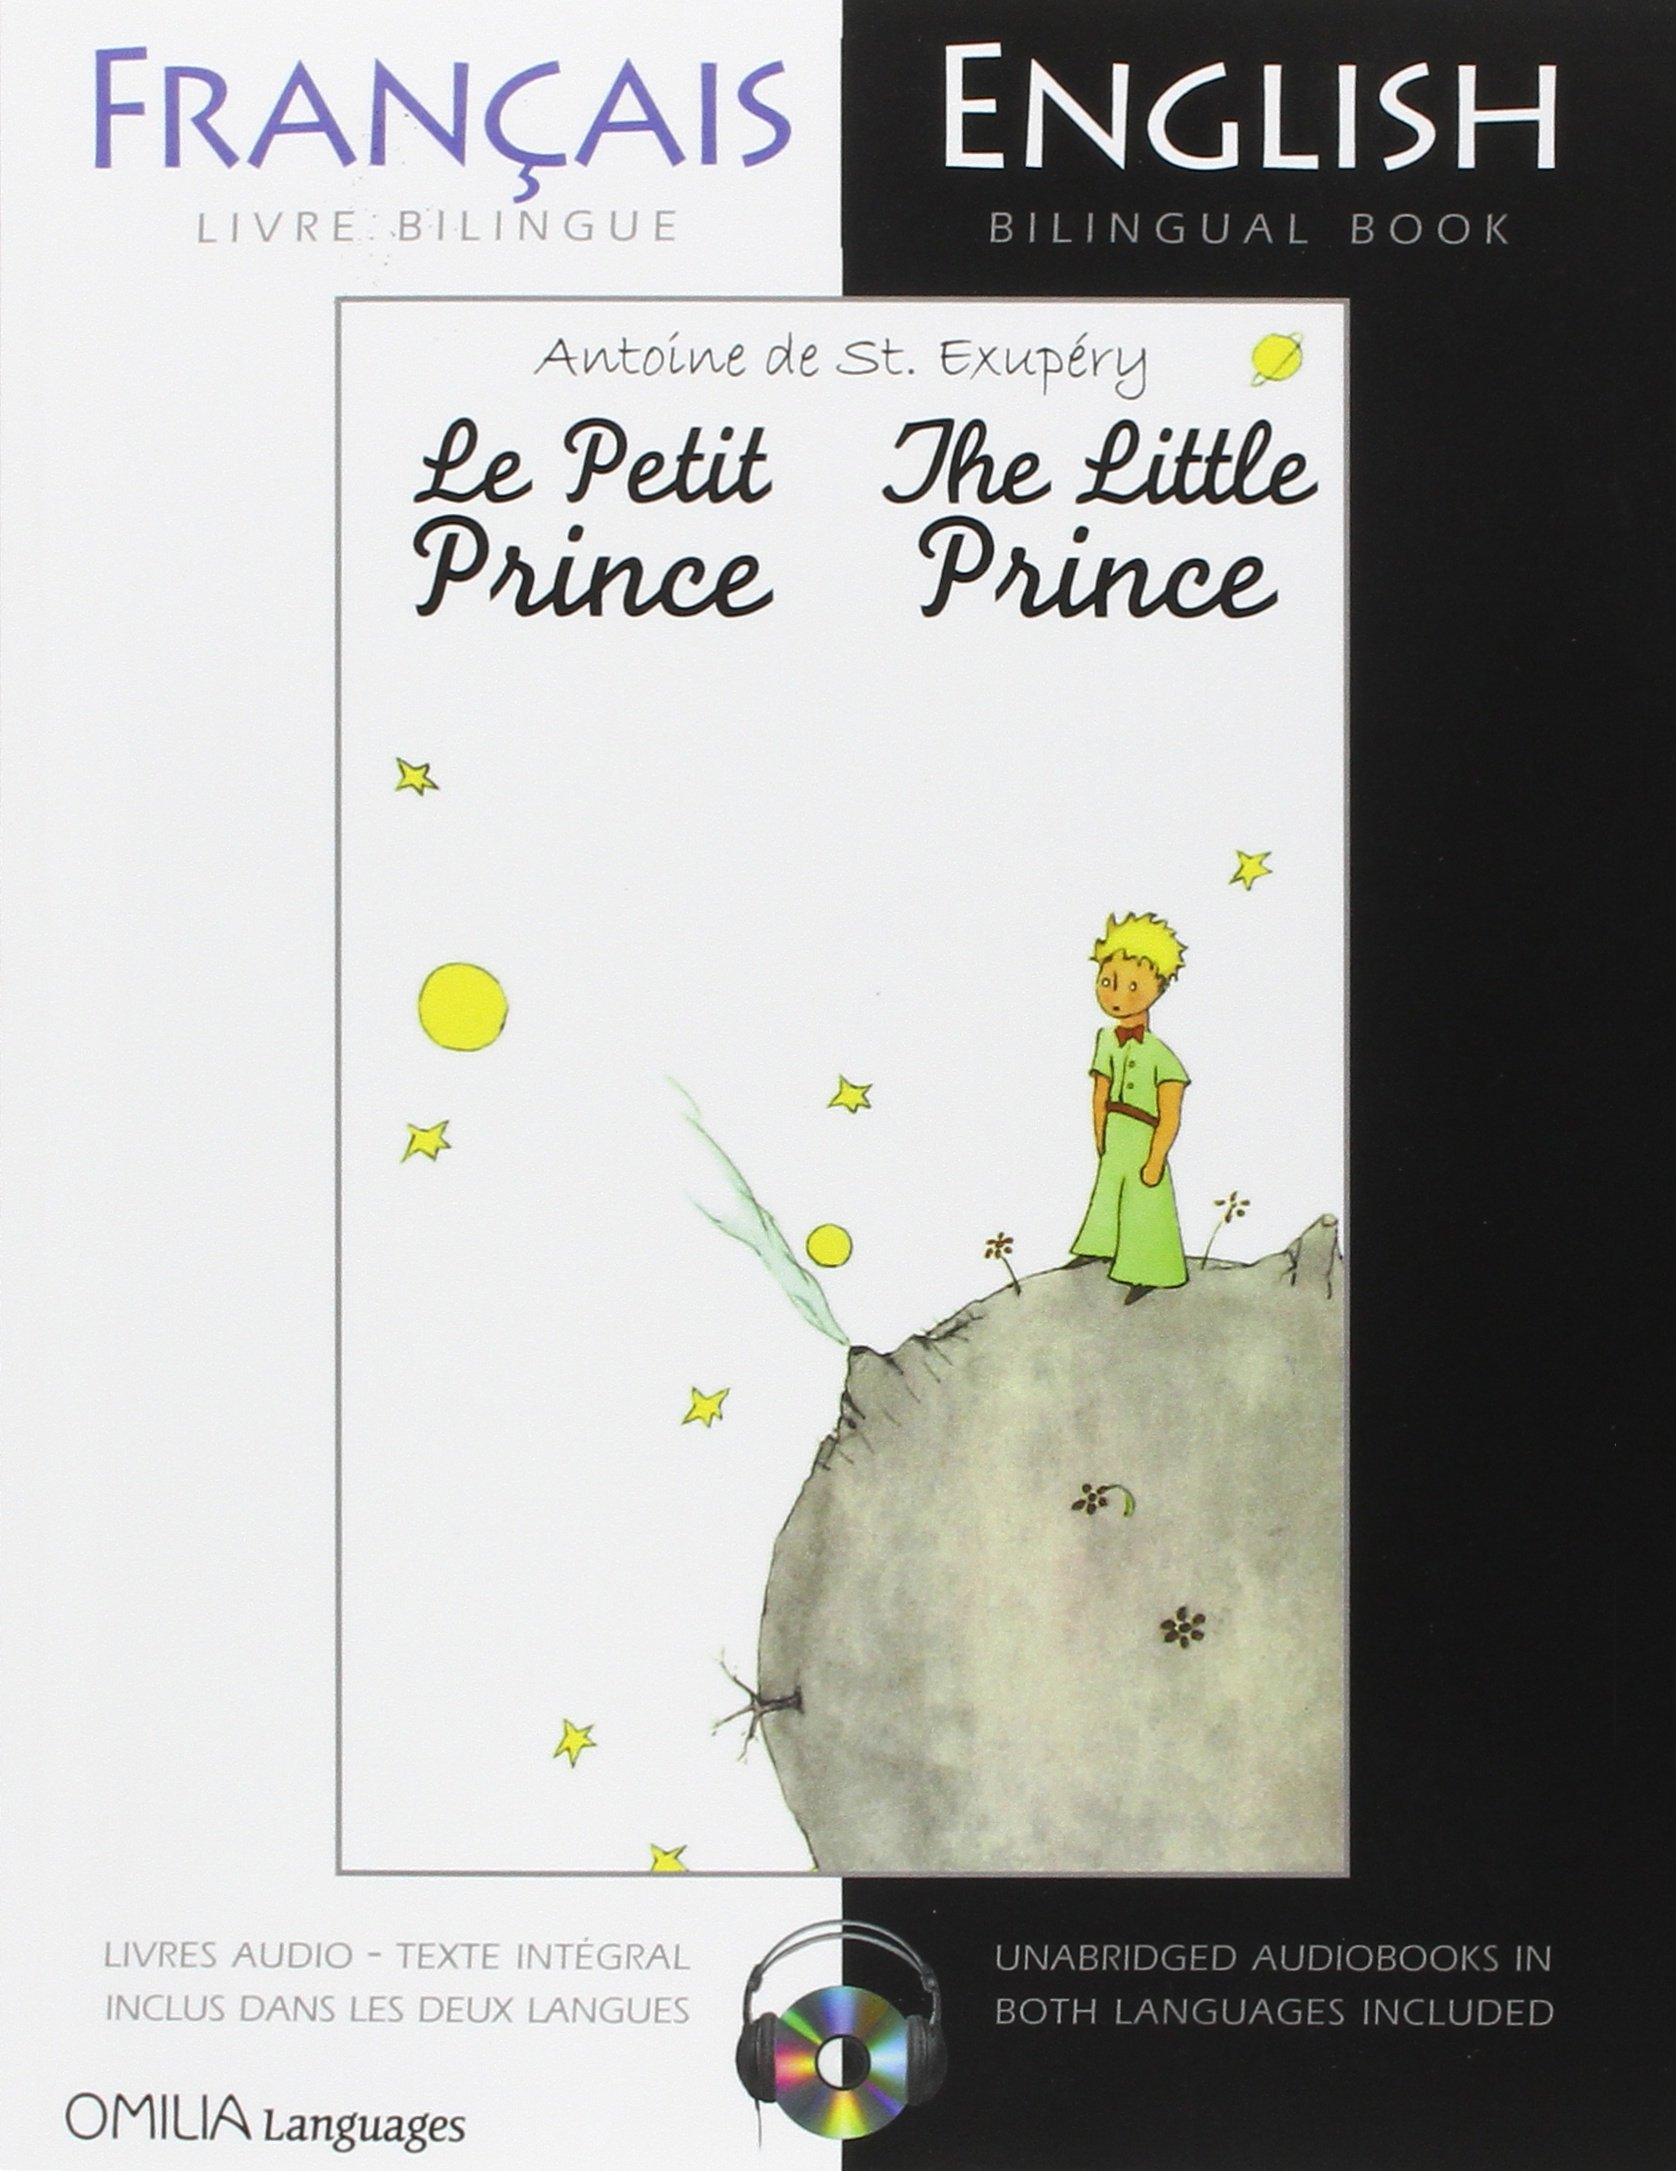 Amazon The Little Prince A French English Bilingual Reader And Edition 9780956721594 Antoine De Saint Exupery Books